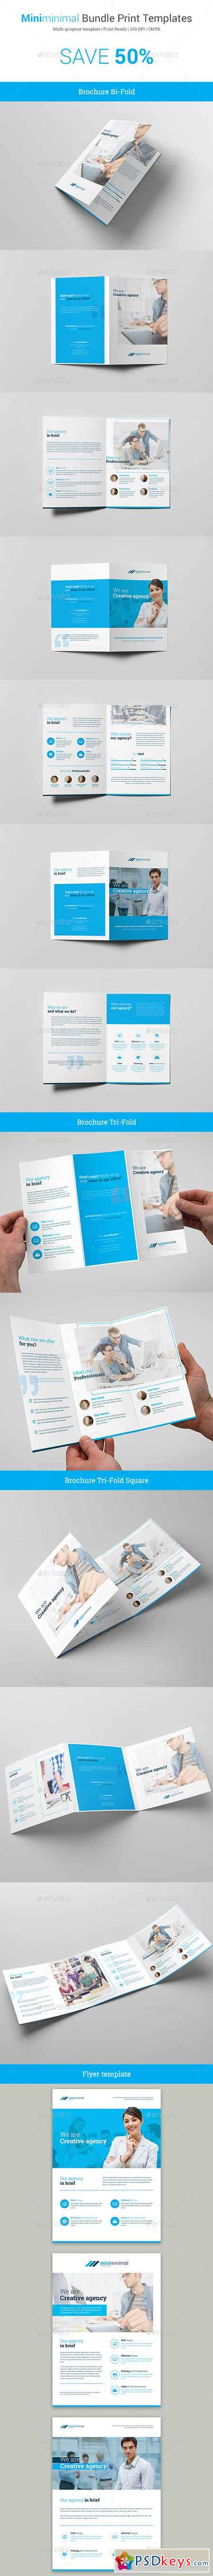 Miniminimal – Business Bundle Print Templates 19165497